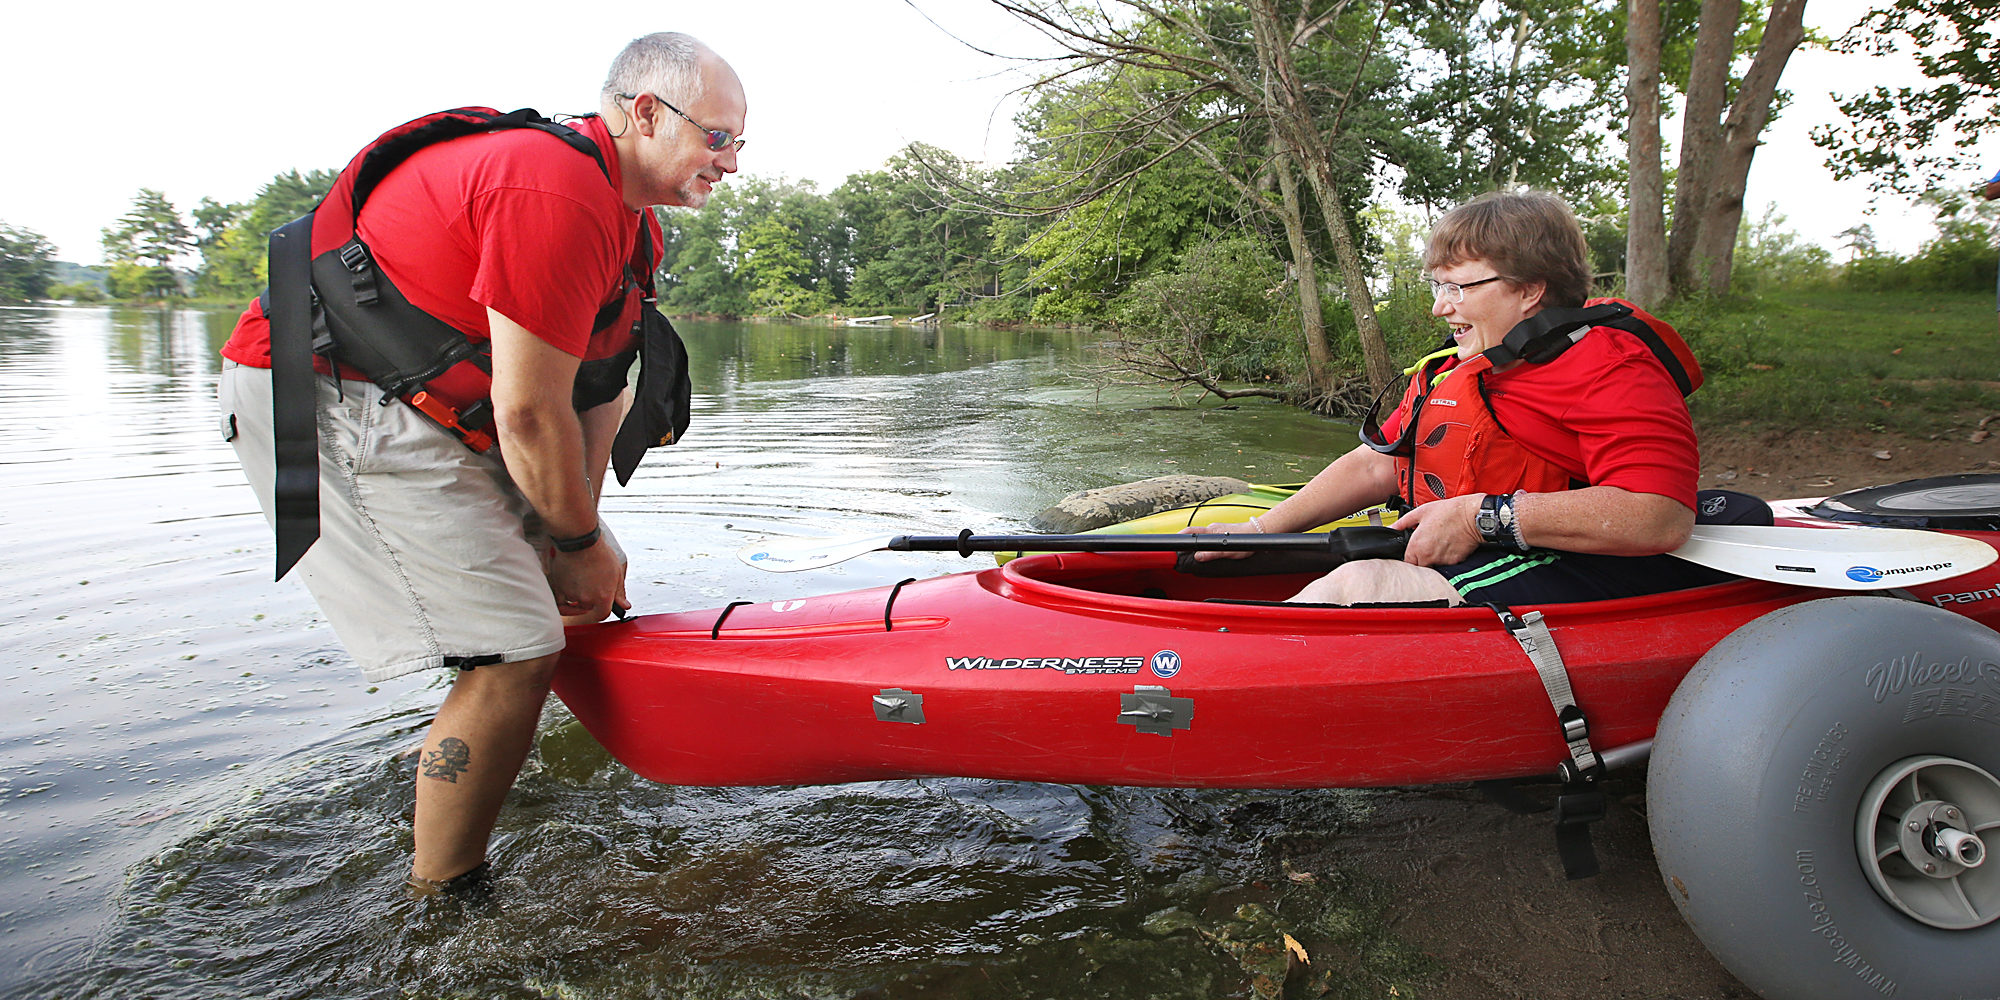 A TAASC (The Adaptive Adventure Sports Coalition) volunteer helps Laura Krietemeyer out onto the water for  an evening kayaking adventure on the Scioto River on July 28, 2015.  Laura is disabled and volunteers for TAASC. (Chris Russell/Dispatch Photo)